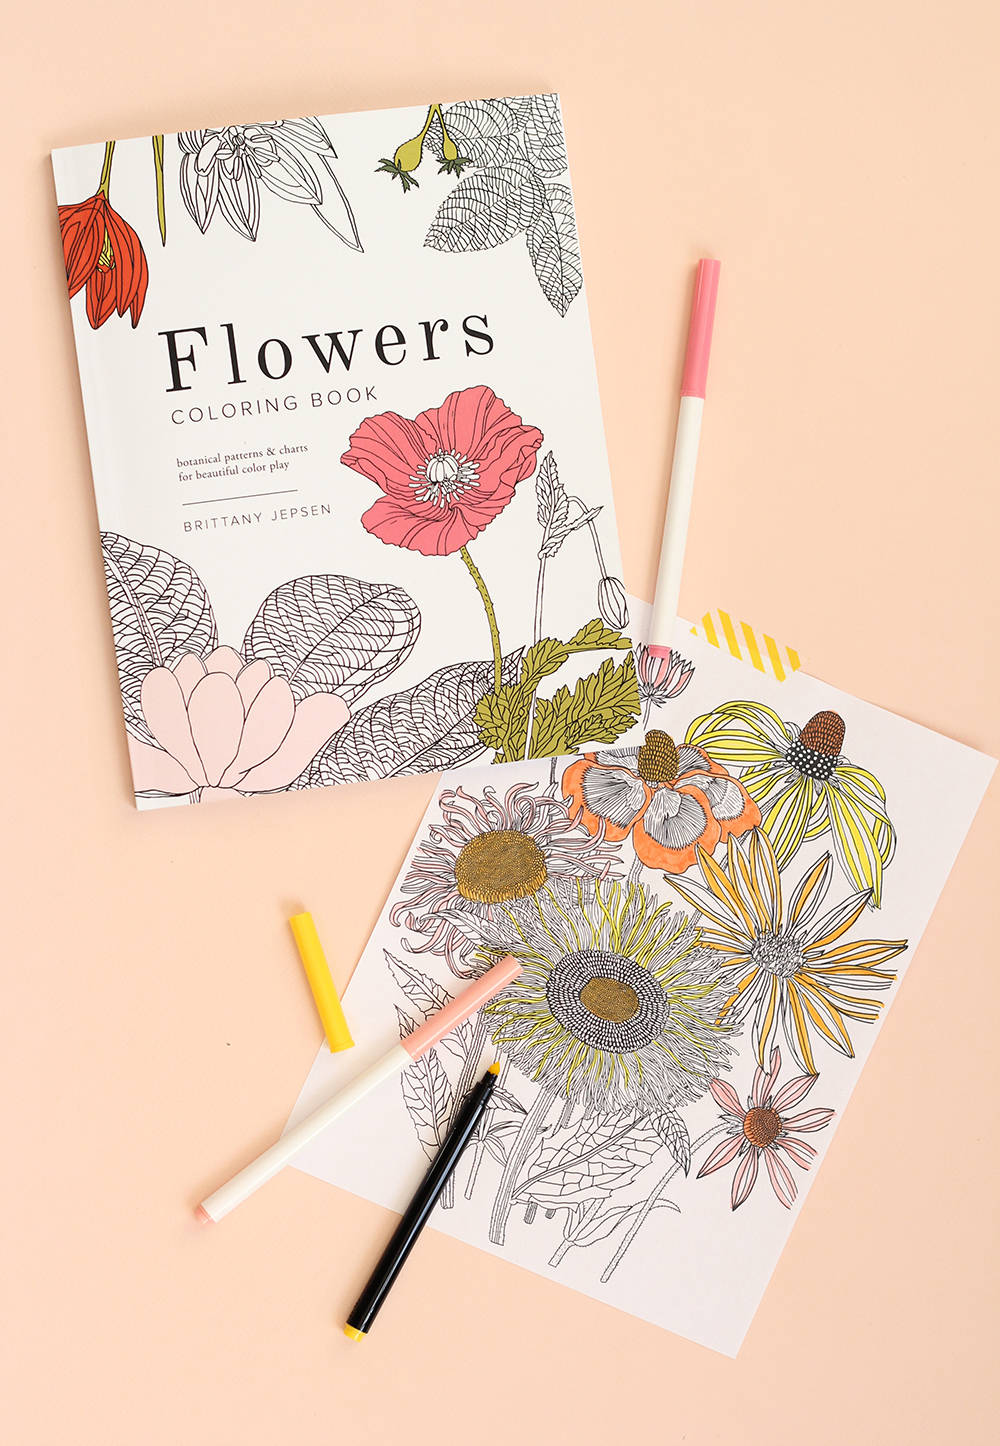 flowers-coloring-book-brittany-jepsen